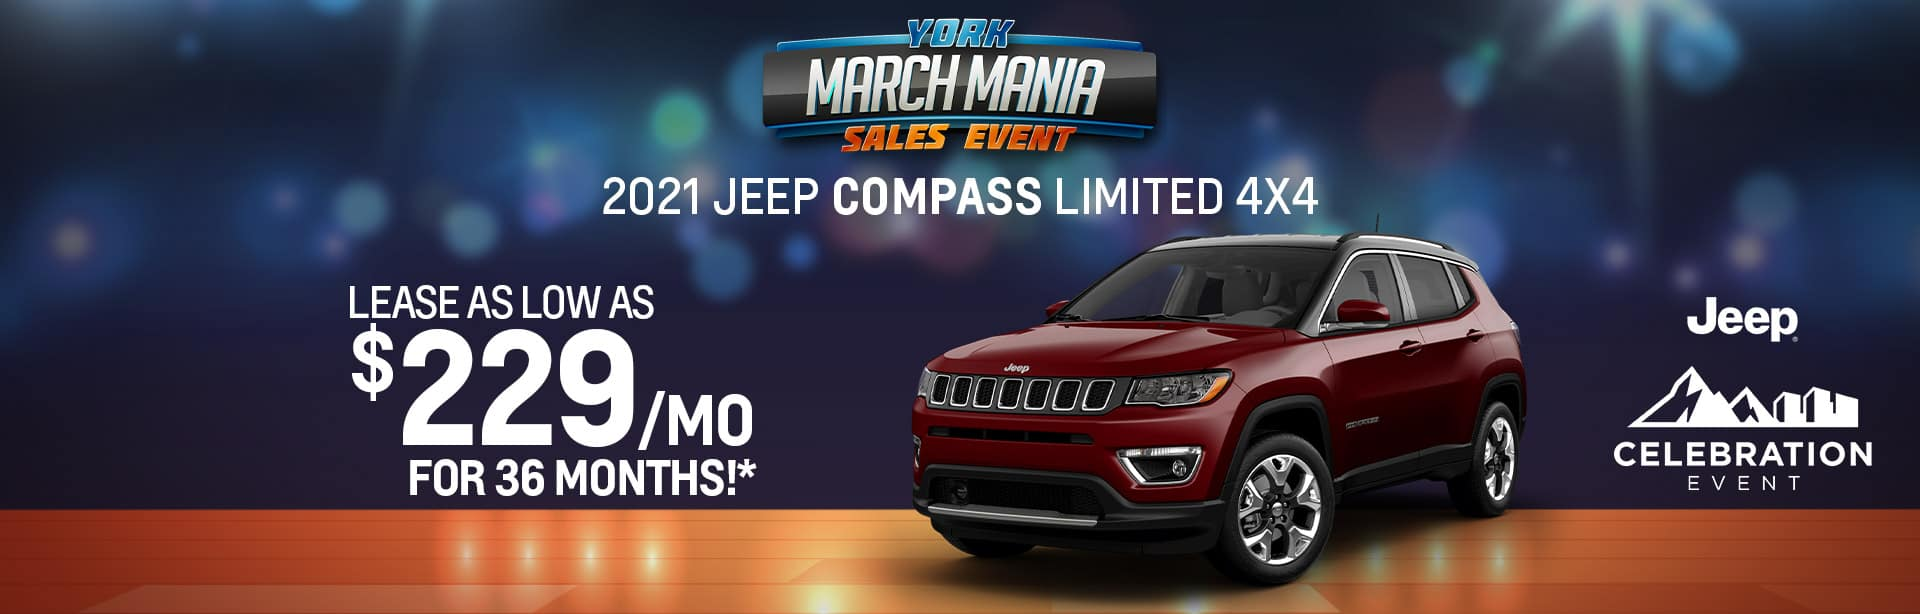 2021 Jeep Compass Lease offer near Indianapolis IN